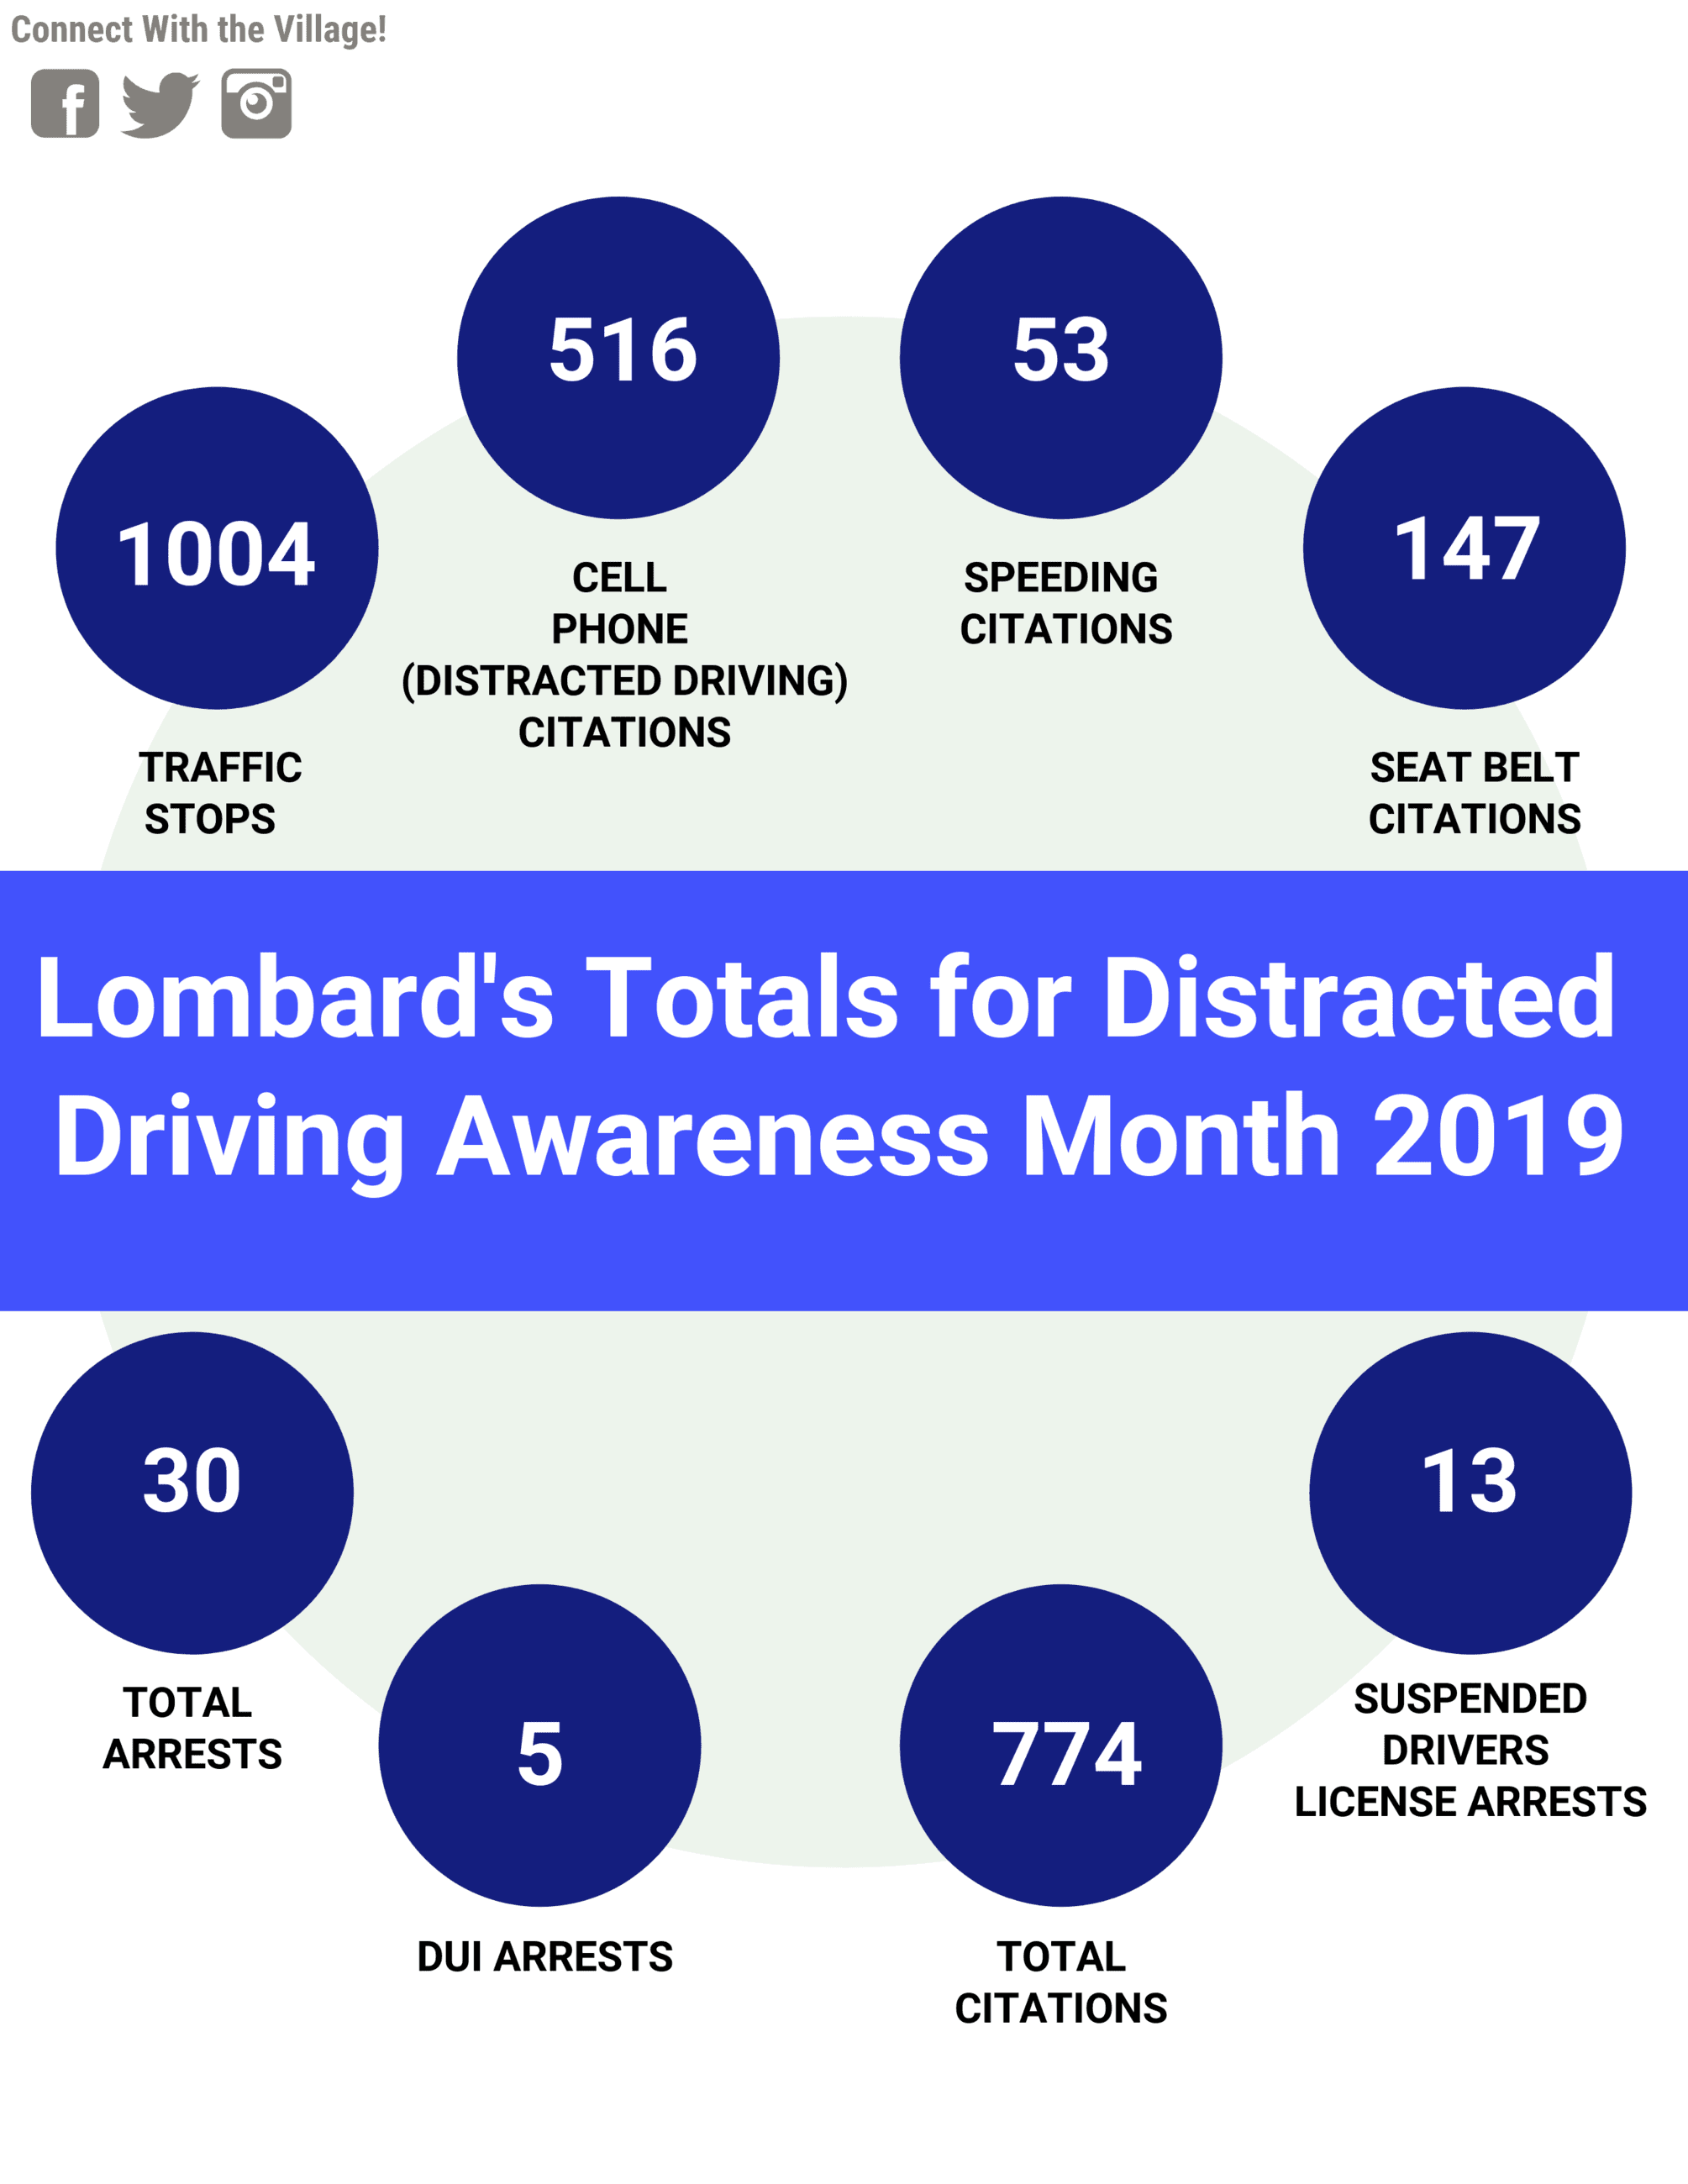 Distracted Driving Month 2019 Totals